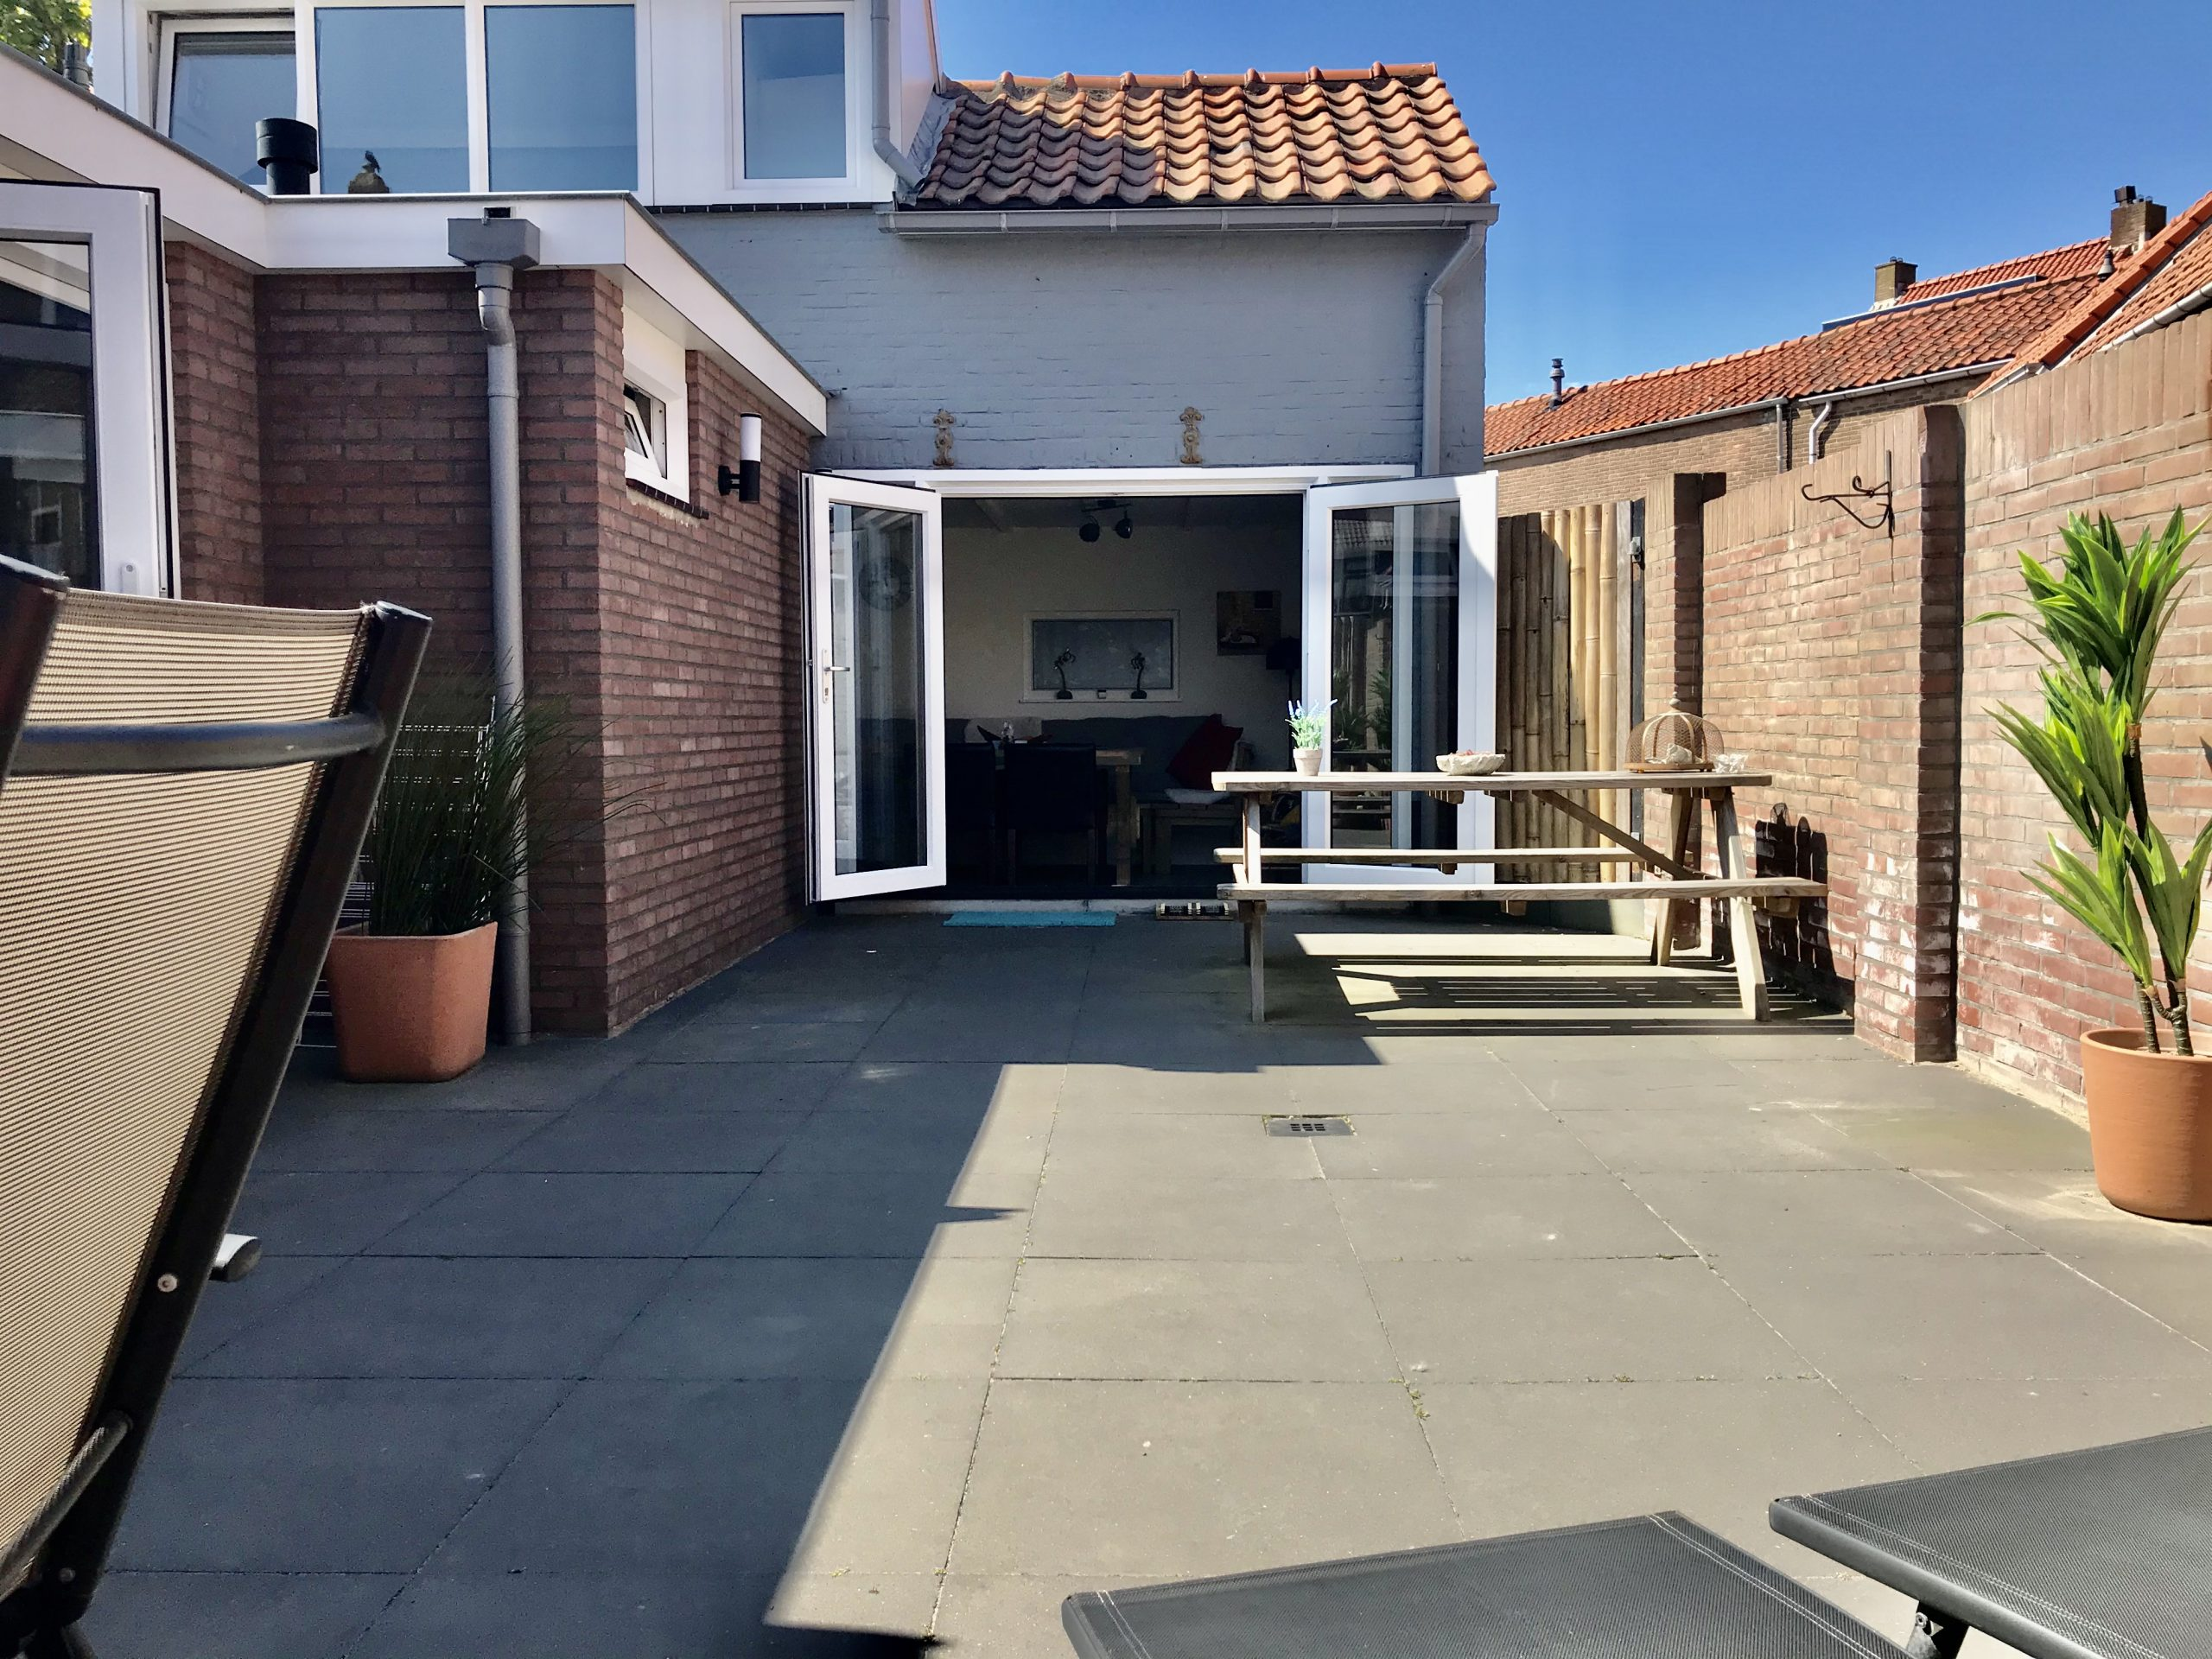 tuin 6 pers huis 5